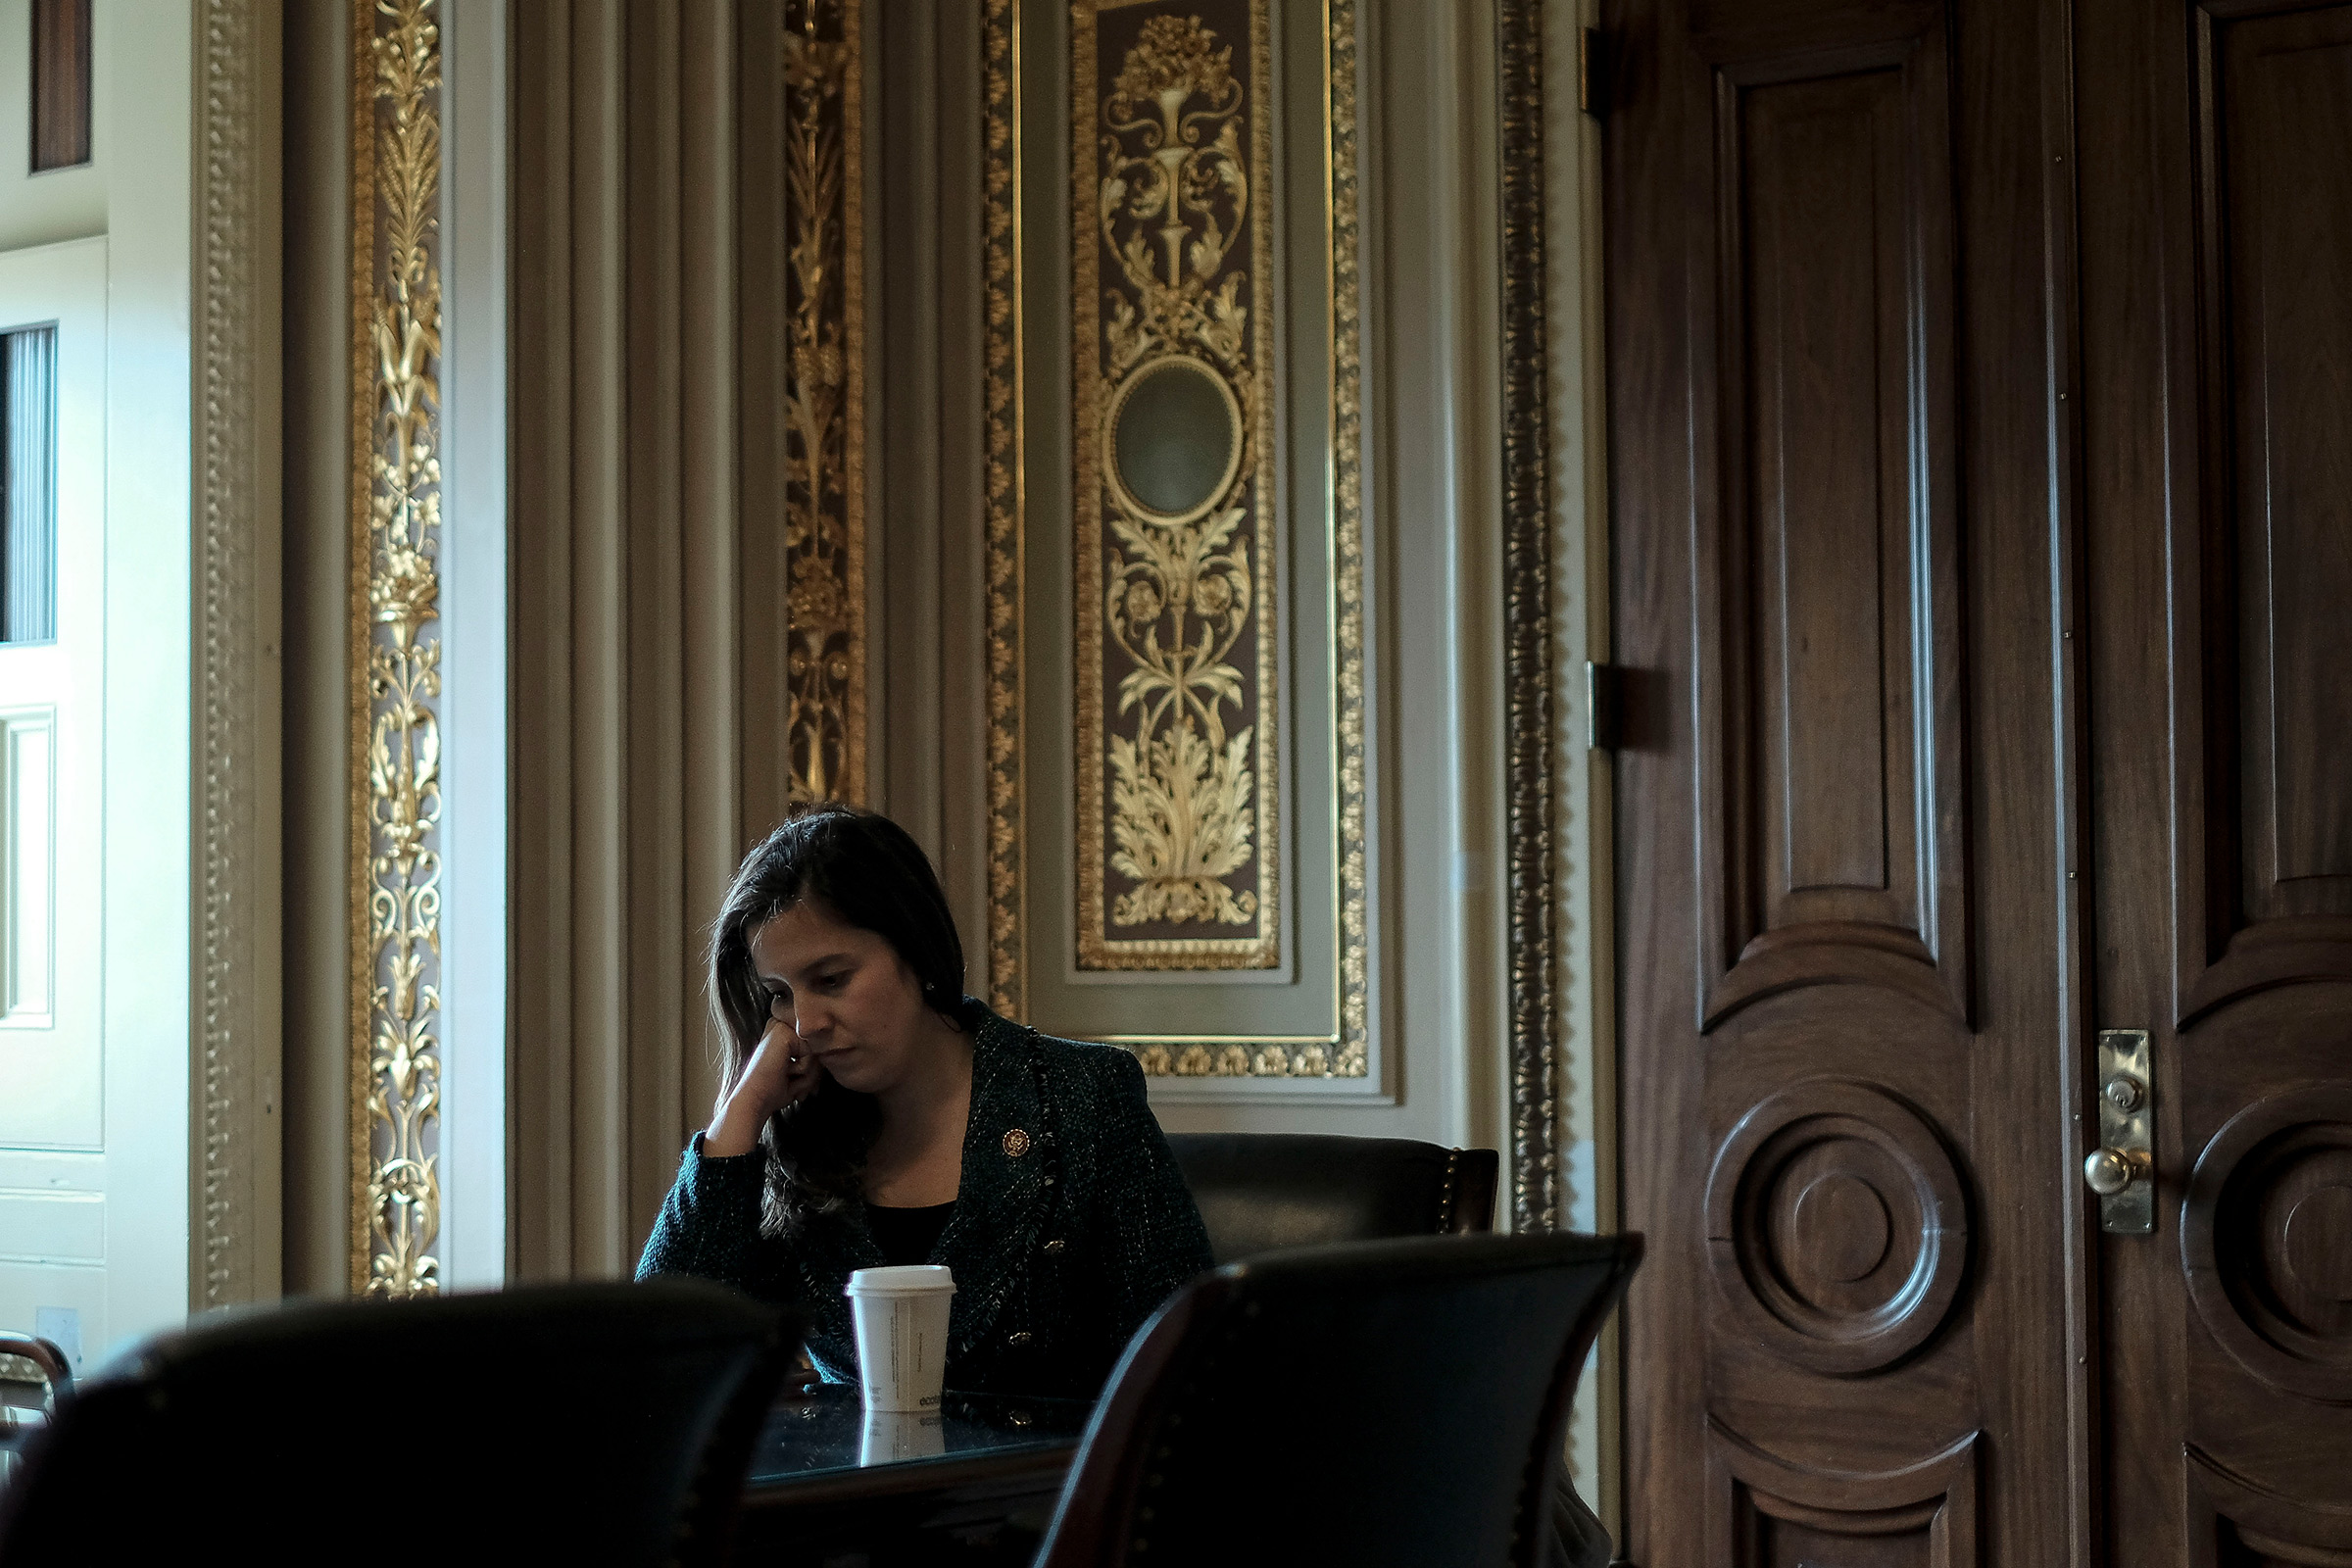 Rep. Elise Stefanik (R-N.Y.), an advisor to Trump's defense team, sits with her staffers outside the defense team meeting room before the impeachment trial at the Capitol in Washington, D.C., on Jan. 24, 2020.